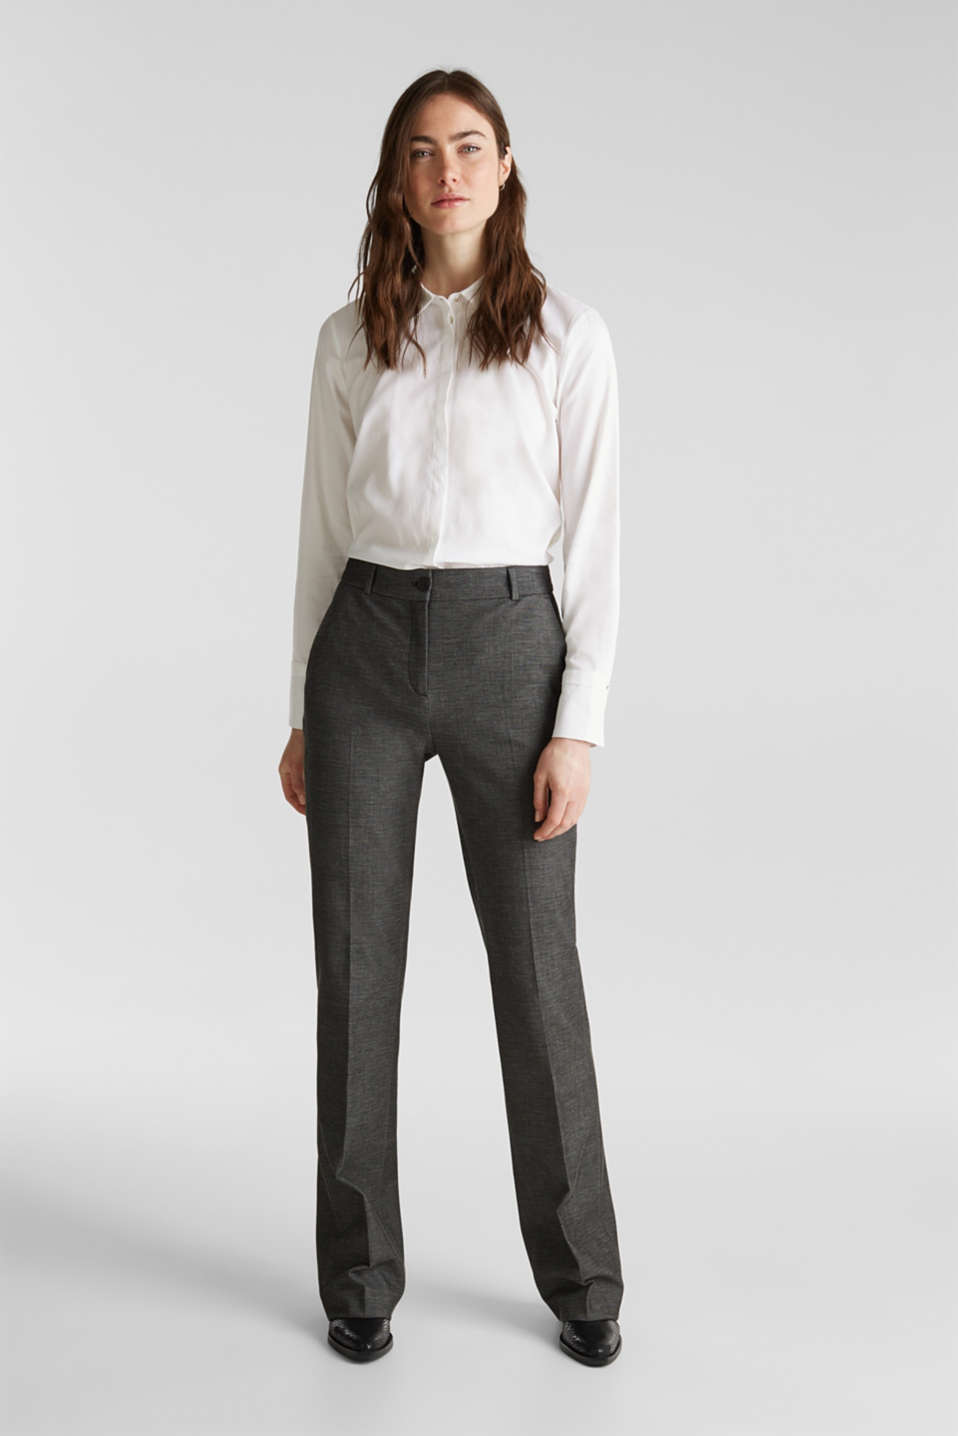 SHINY TEXTURE mix + match stretch trousers, DARK GREY 5, detail image number 0